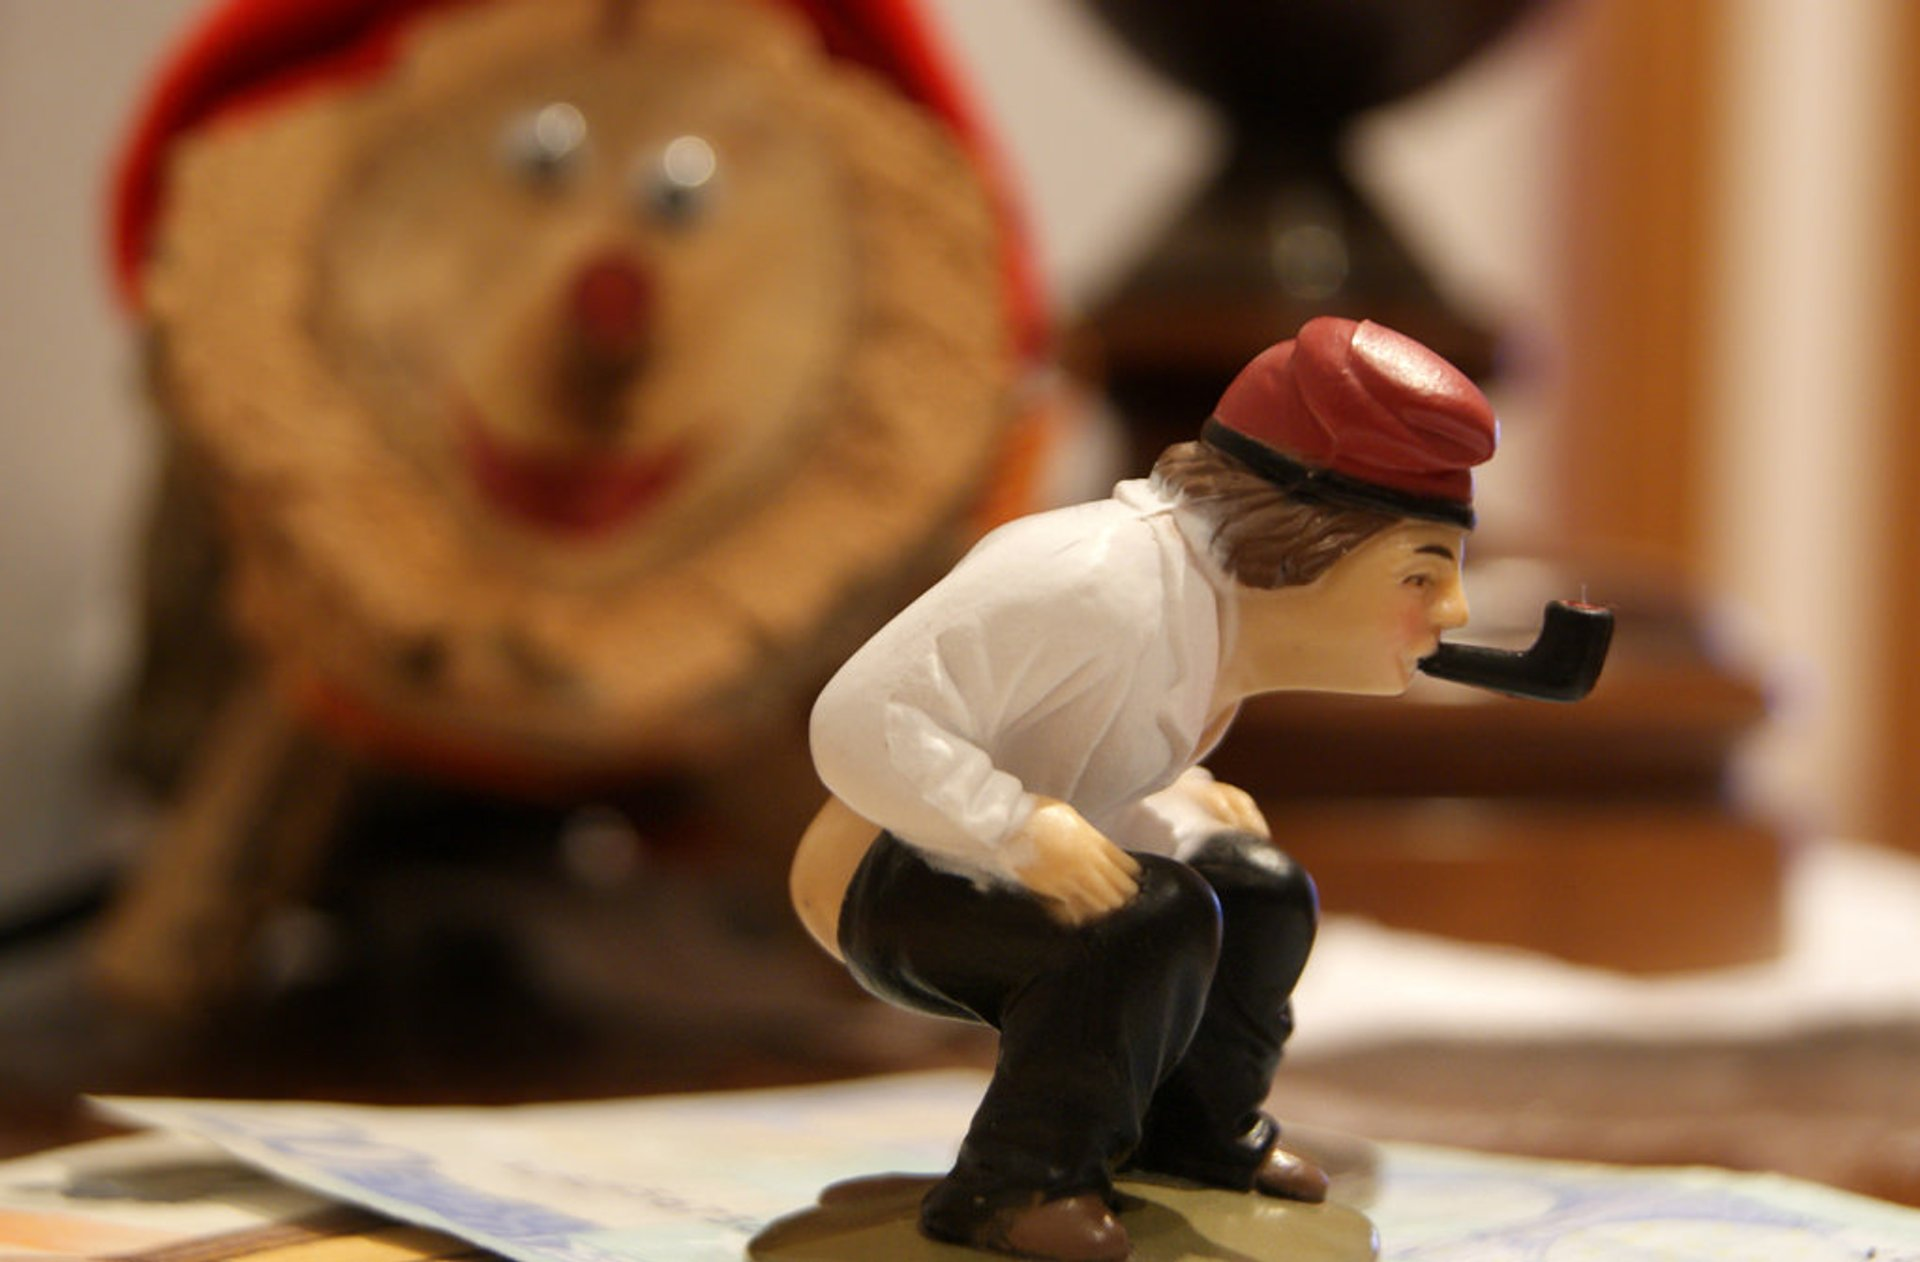 El Caganer in Barcelona 2020 - Best Time